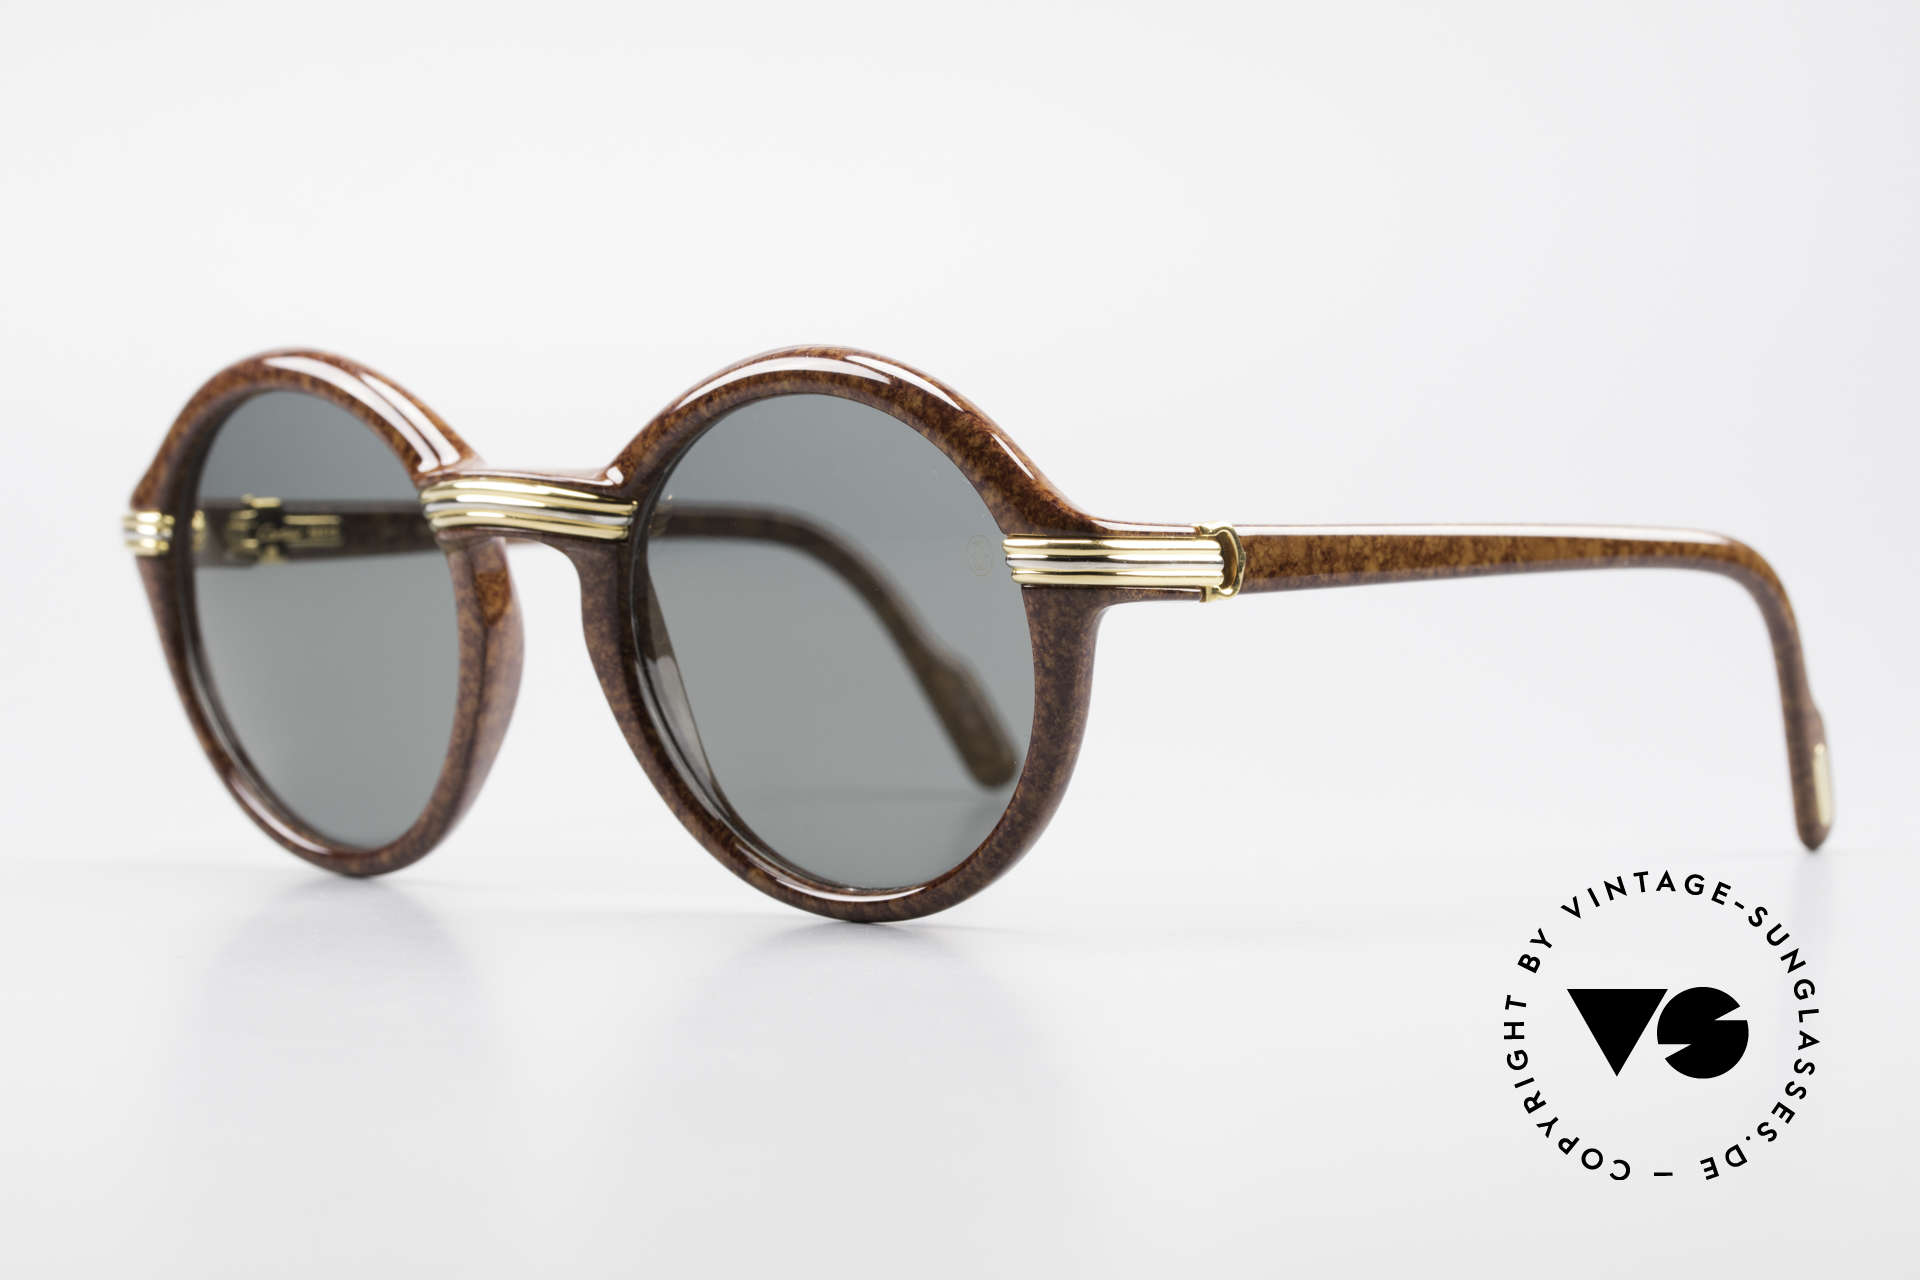 Cartier Cabriolet Round Luxury Shades Large, high-end original lenses with CARTIER logo (100% UV), Made for Men and Women